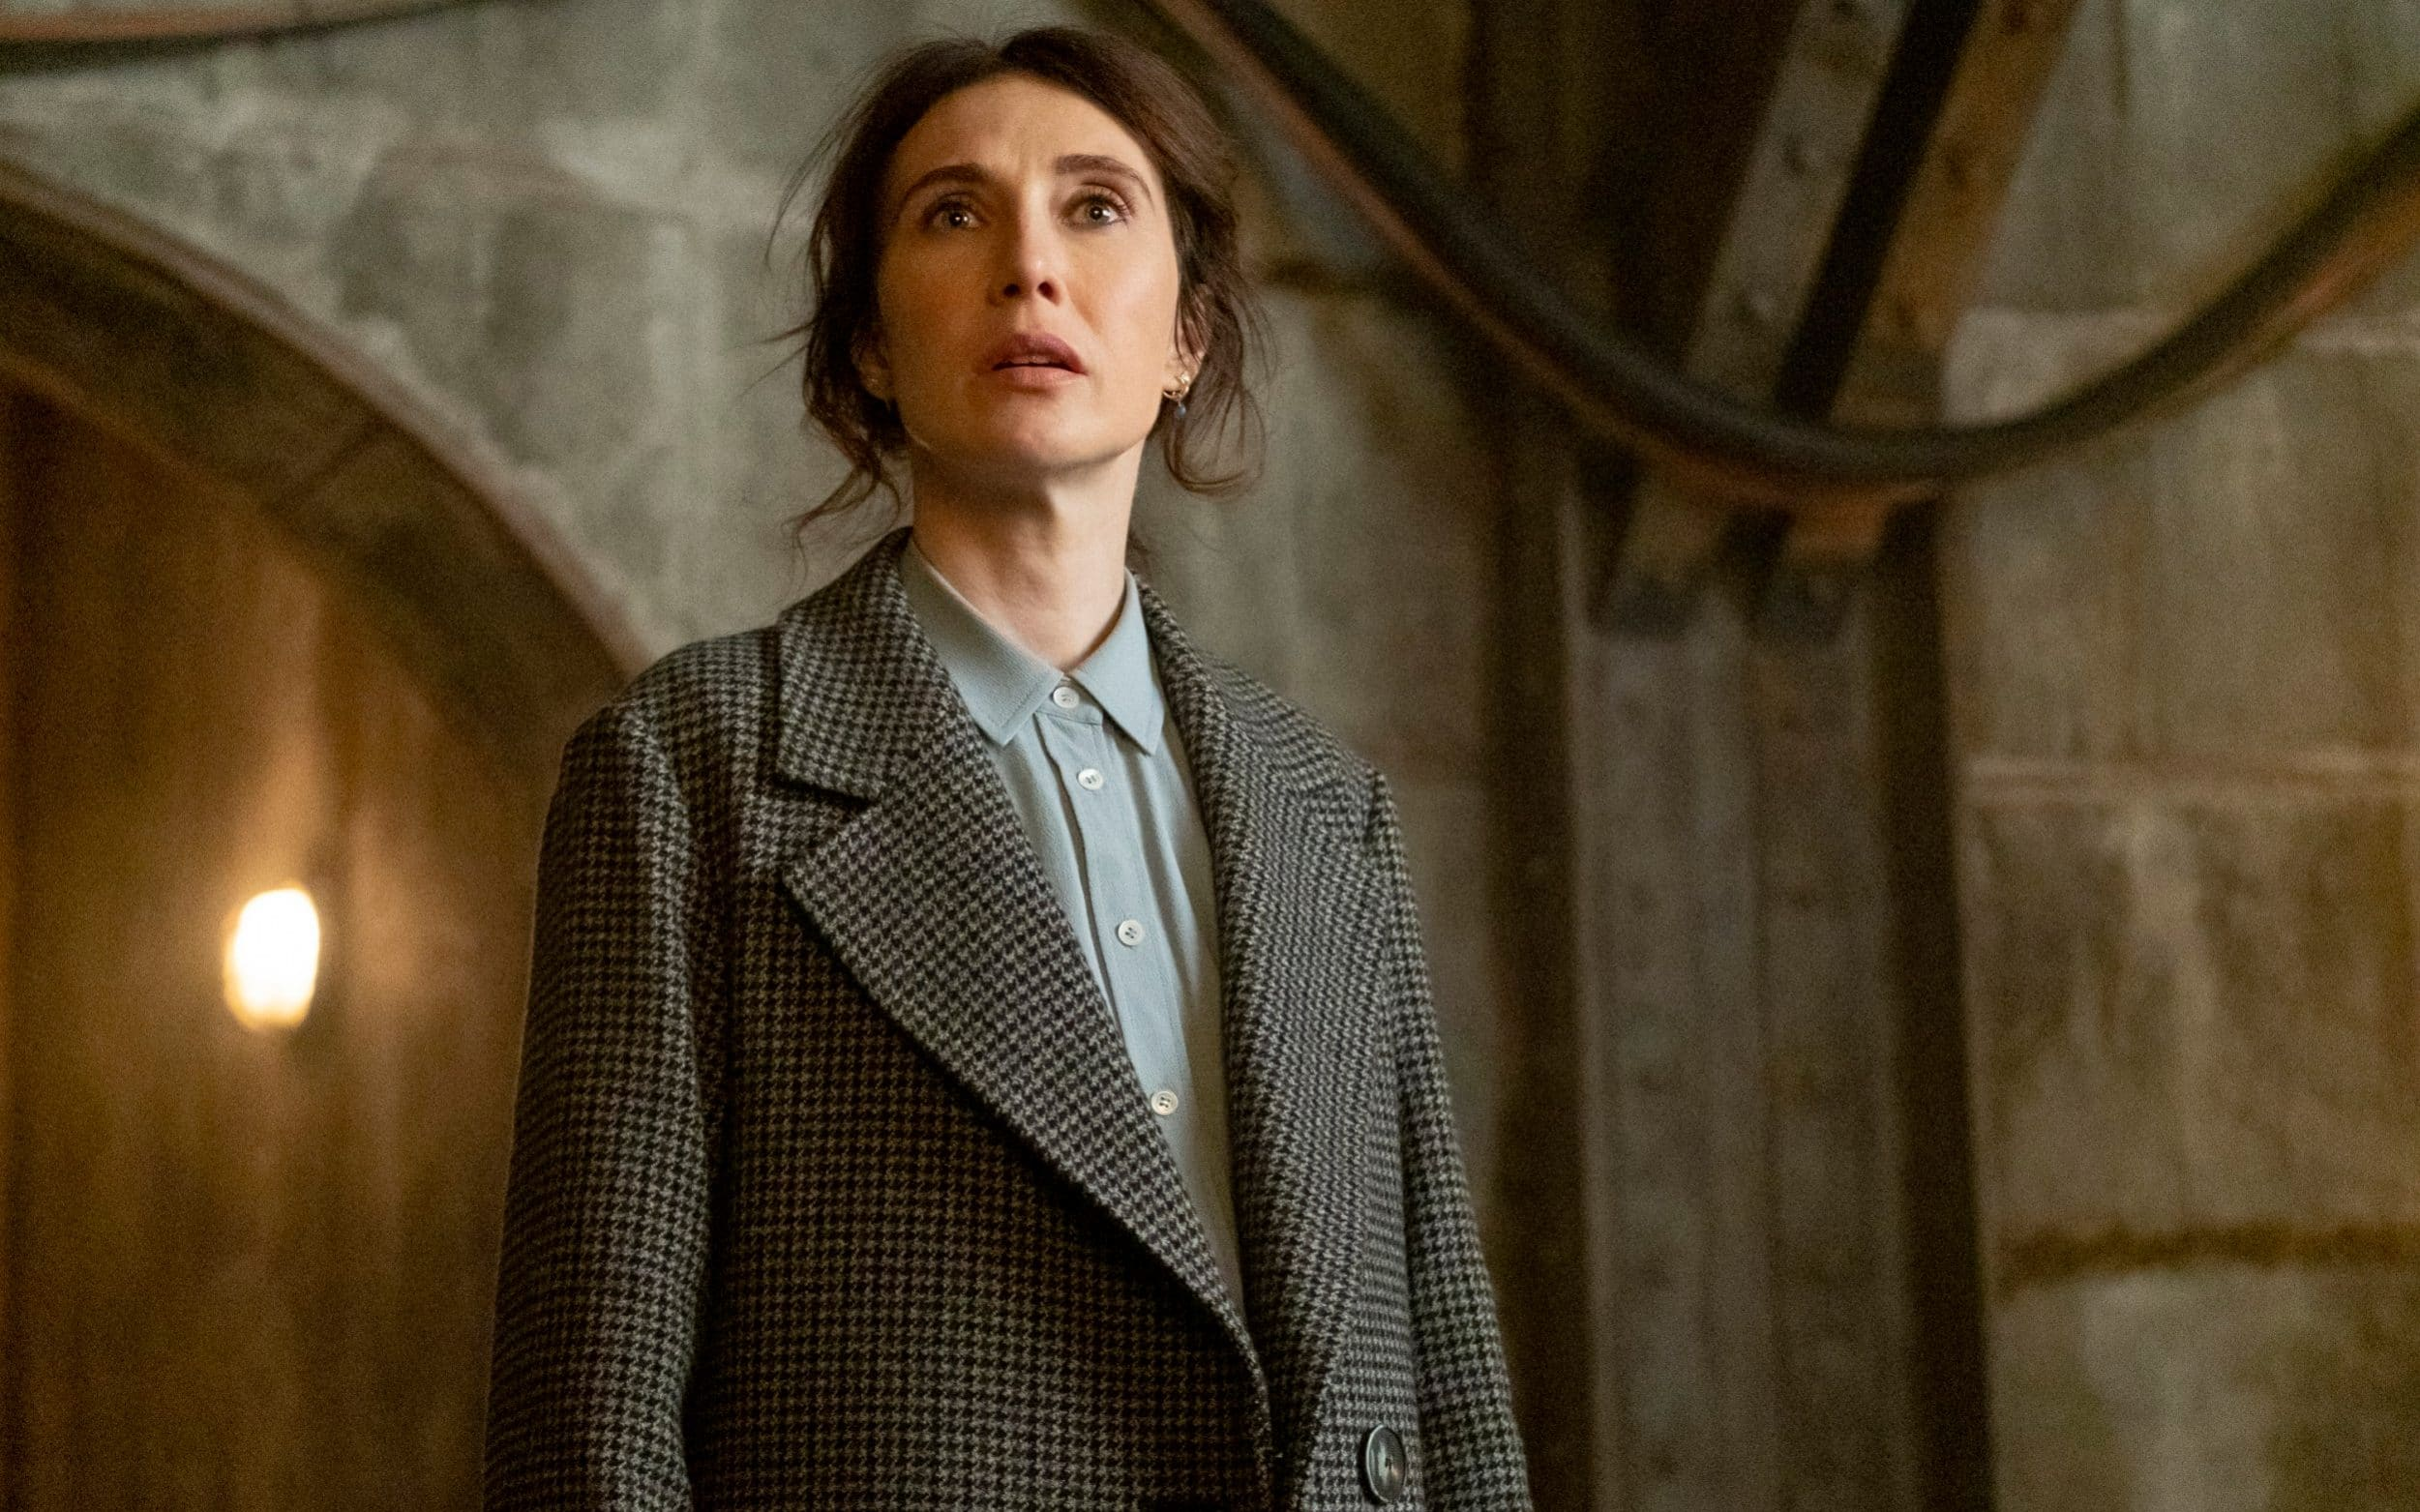 74 New British TV Shows in 2019: Dramas, Comedies, Mystery Series 36